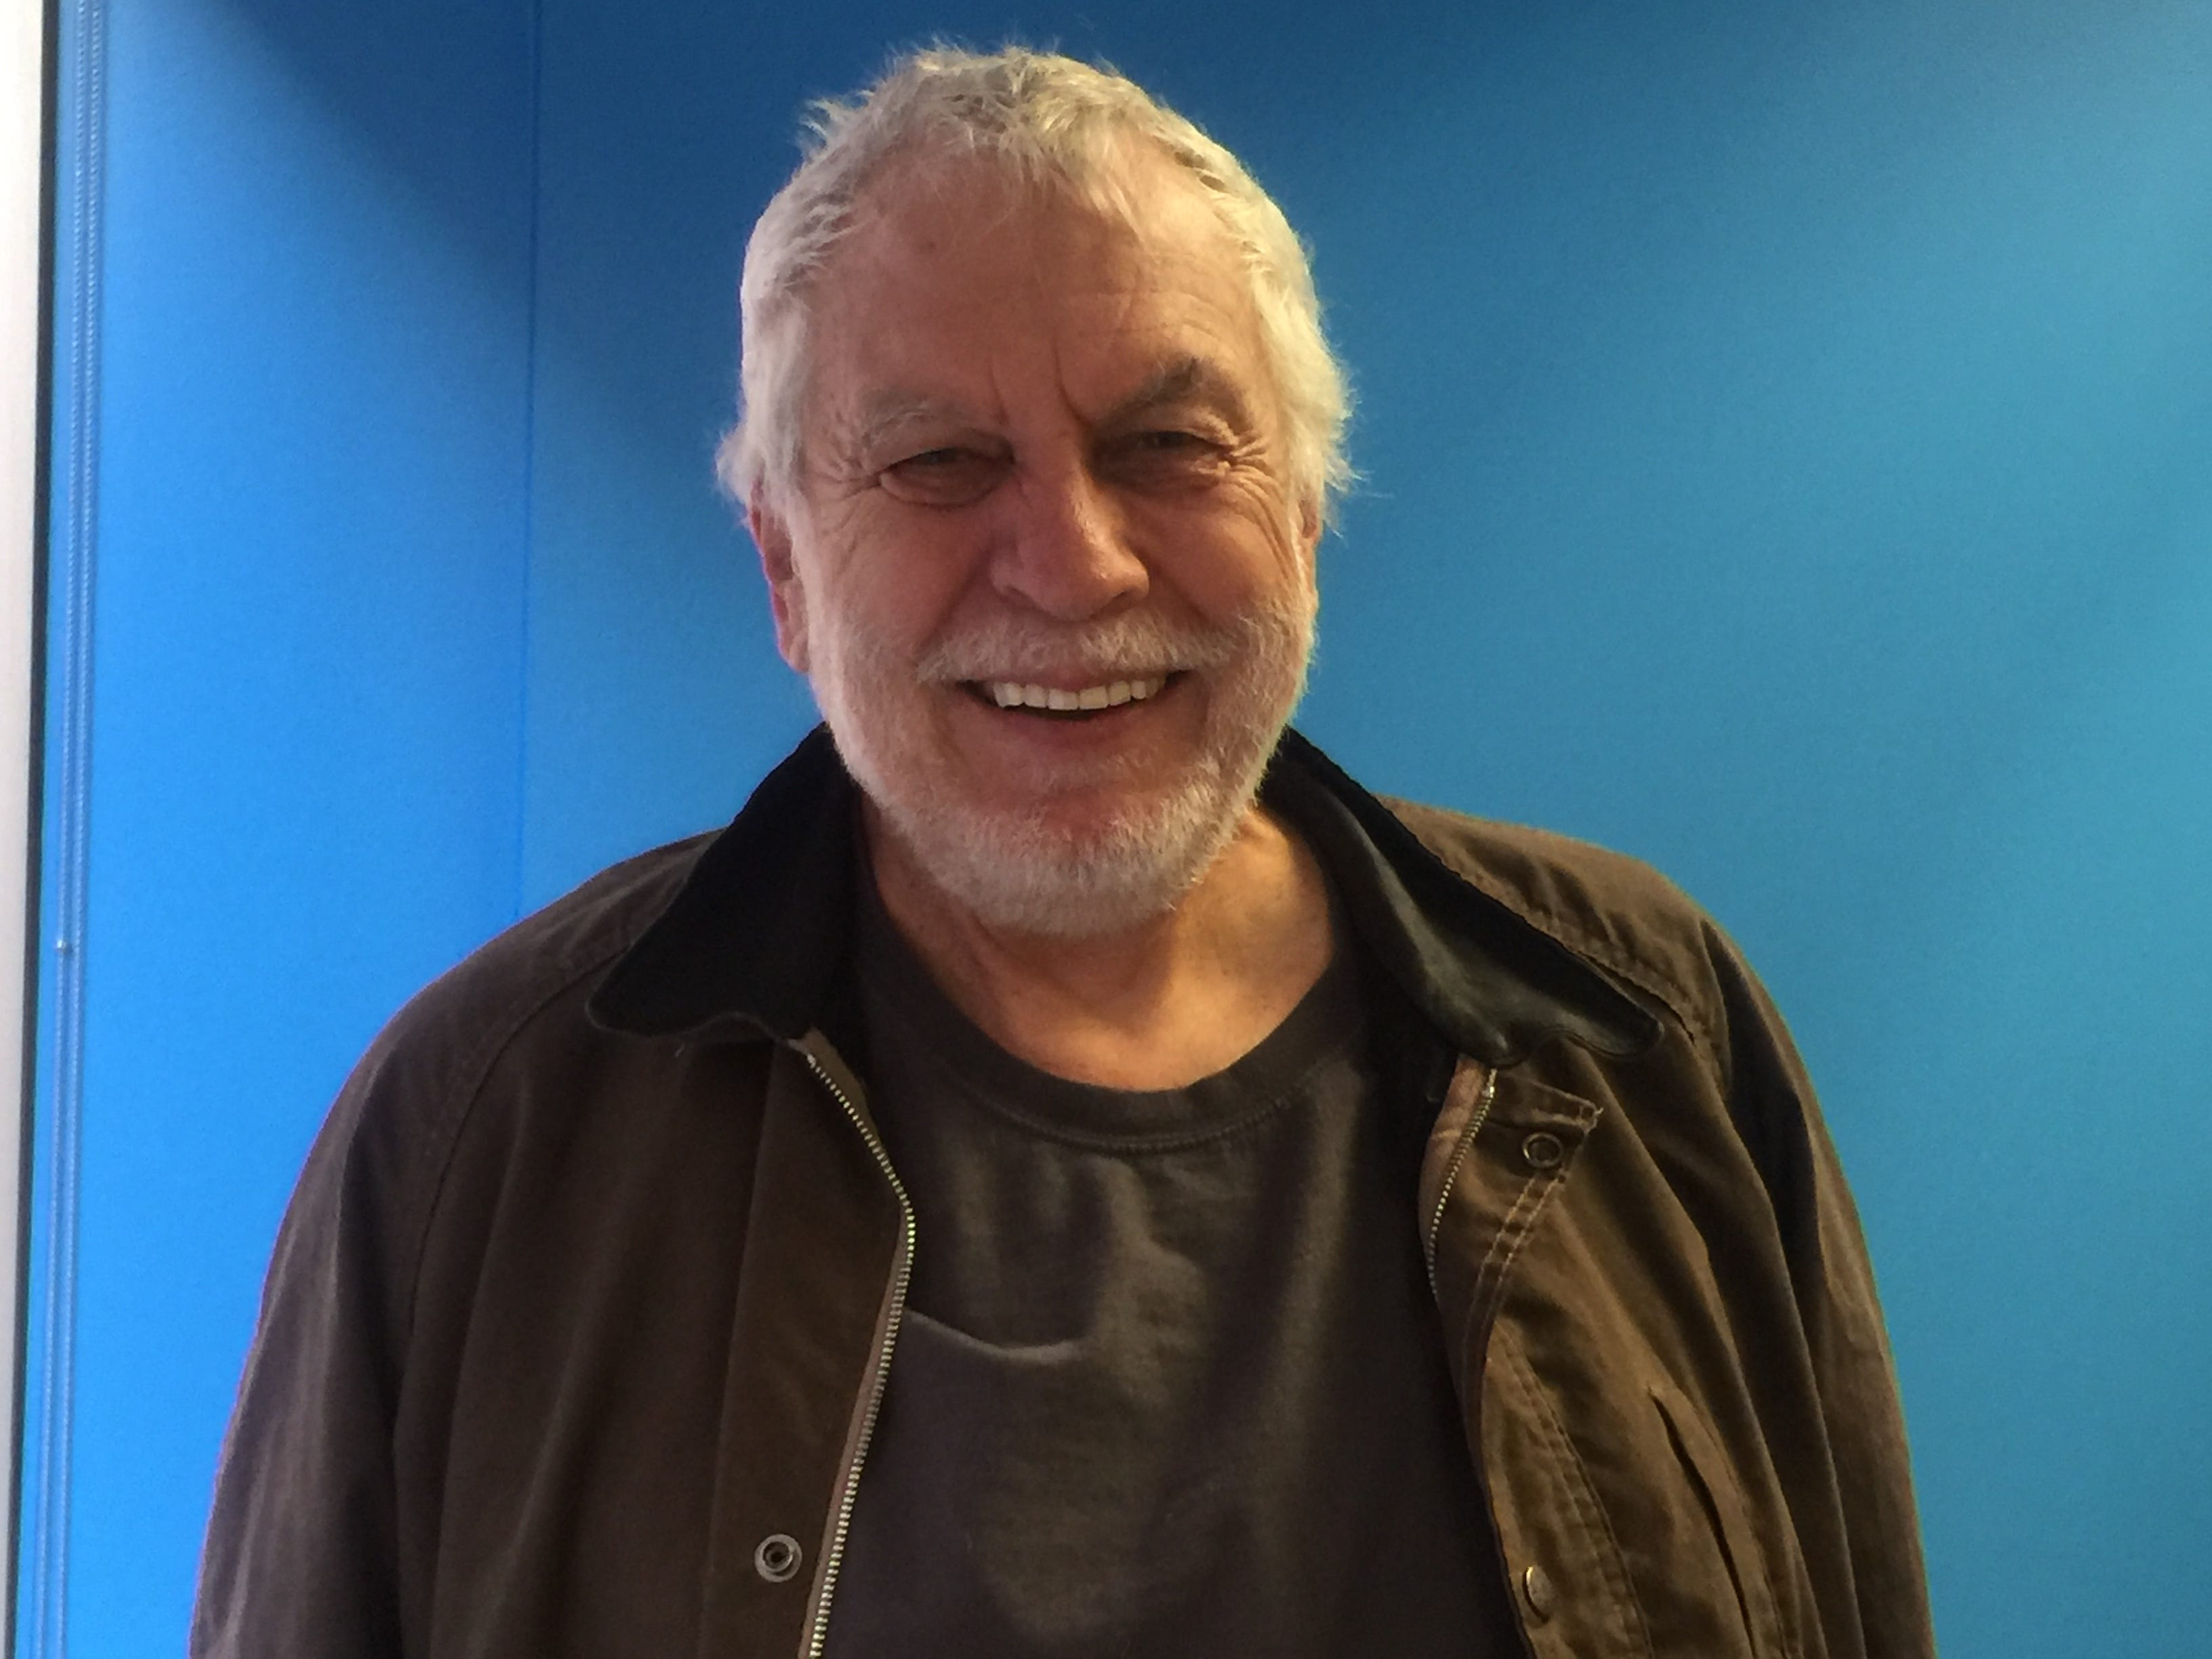 Games conference pulls award for Atari founder after outcry